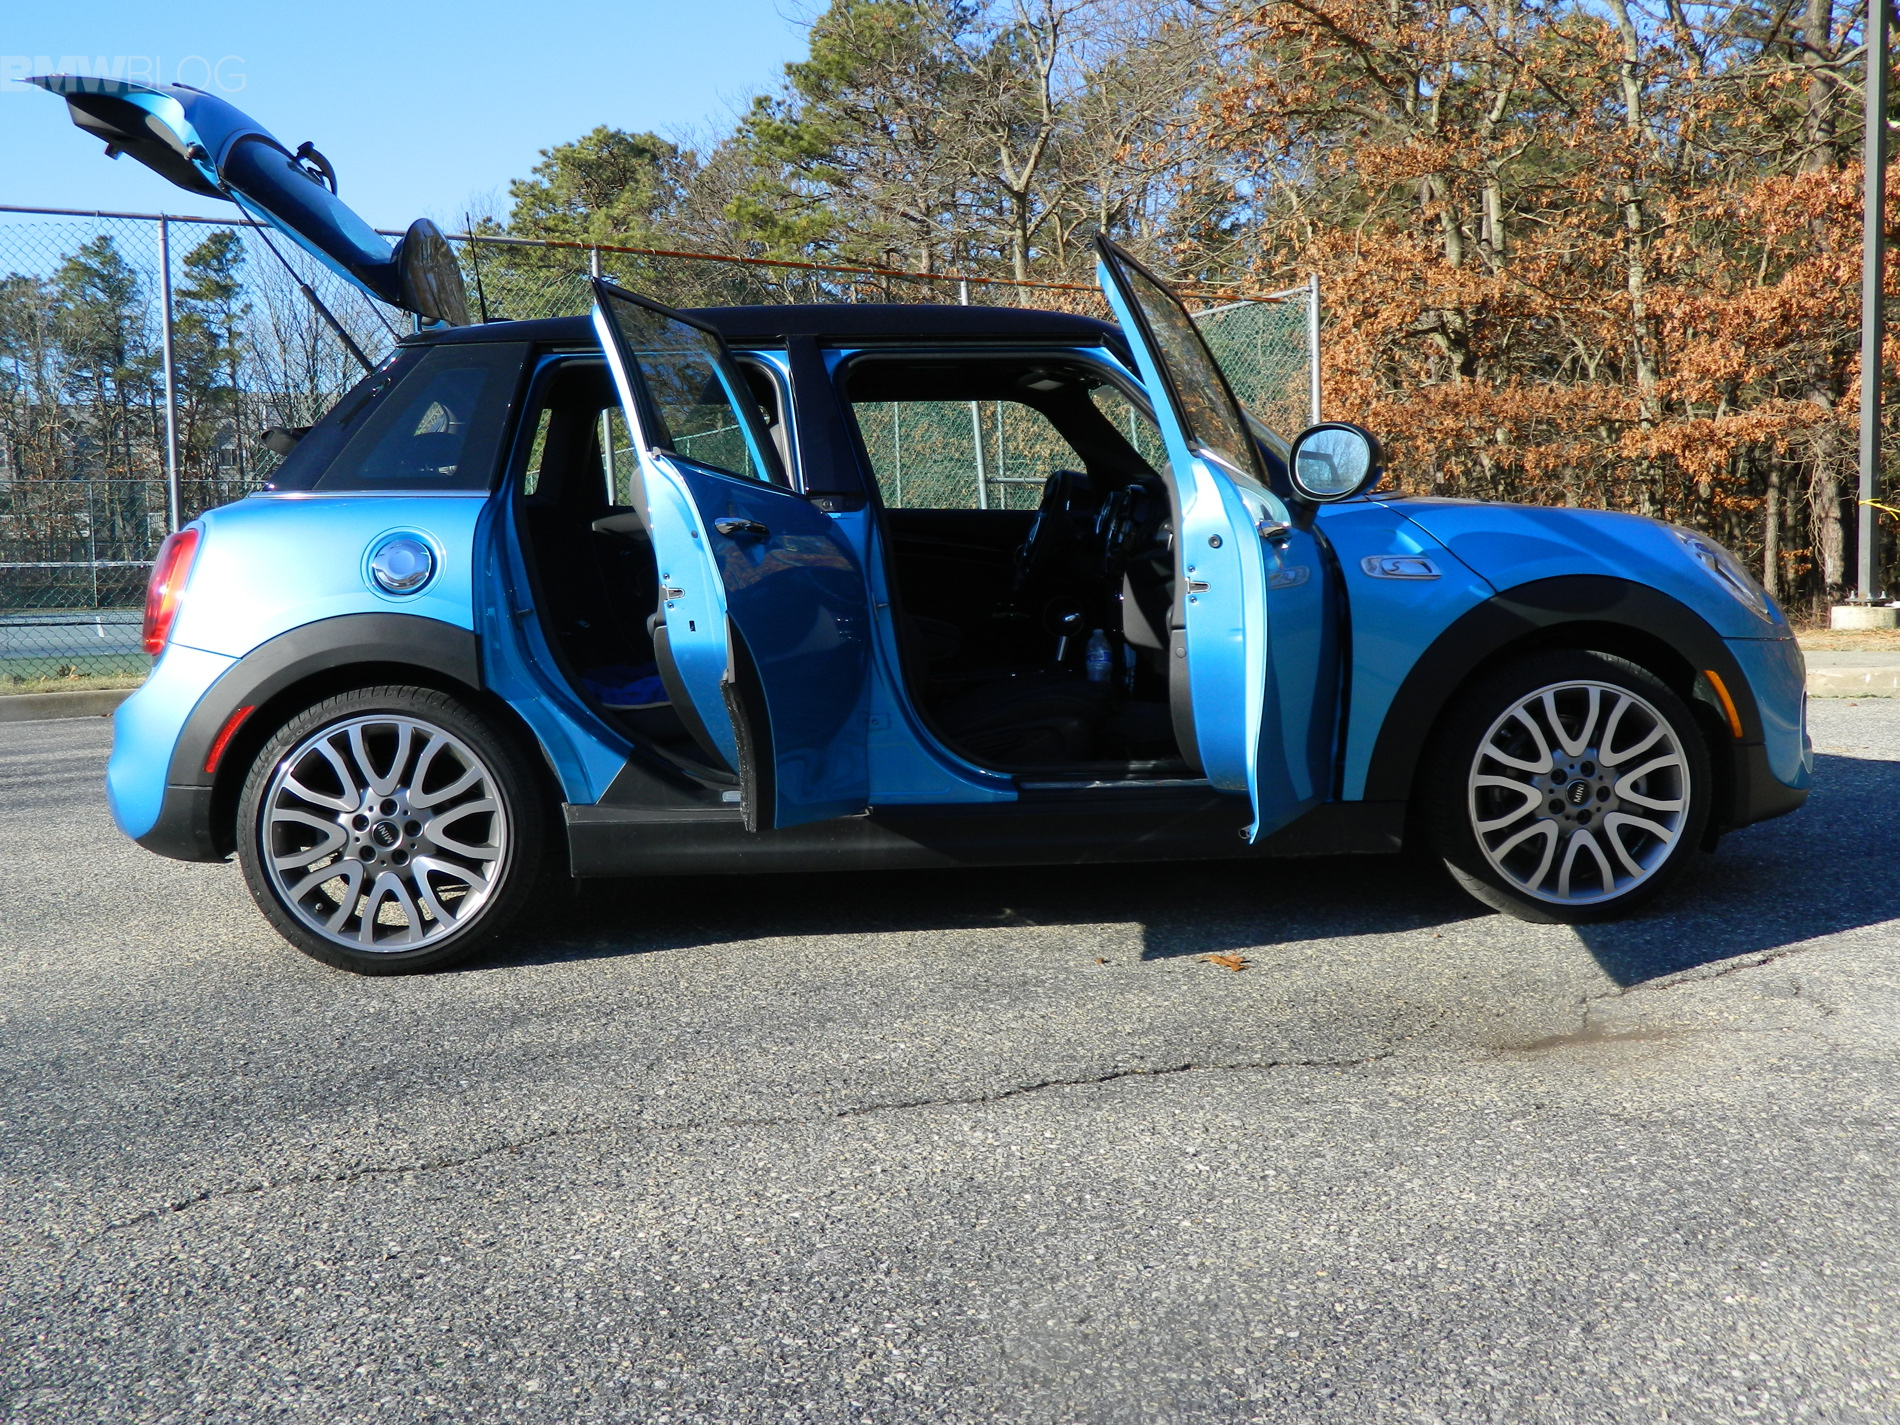 bmw mini 52 reviews of momentum bmw mini search 654 cars for sale got call quickly.